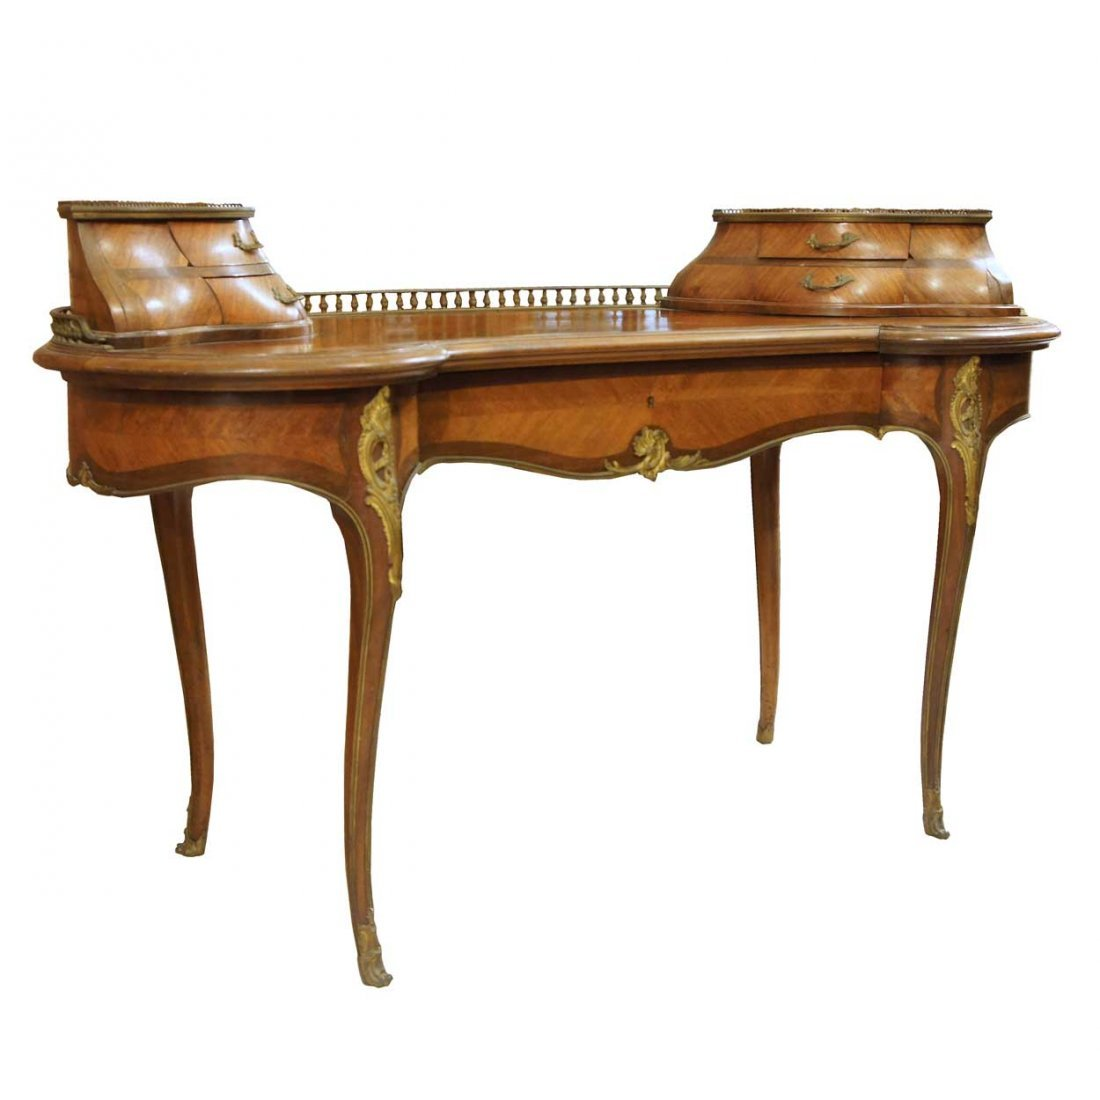 13: A French Signed Louis XV Style Kidney Shaped Parque